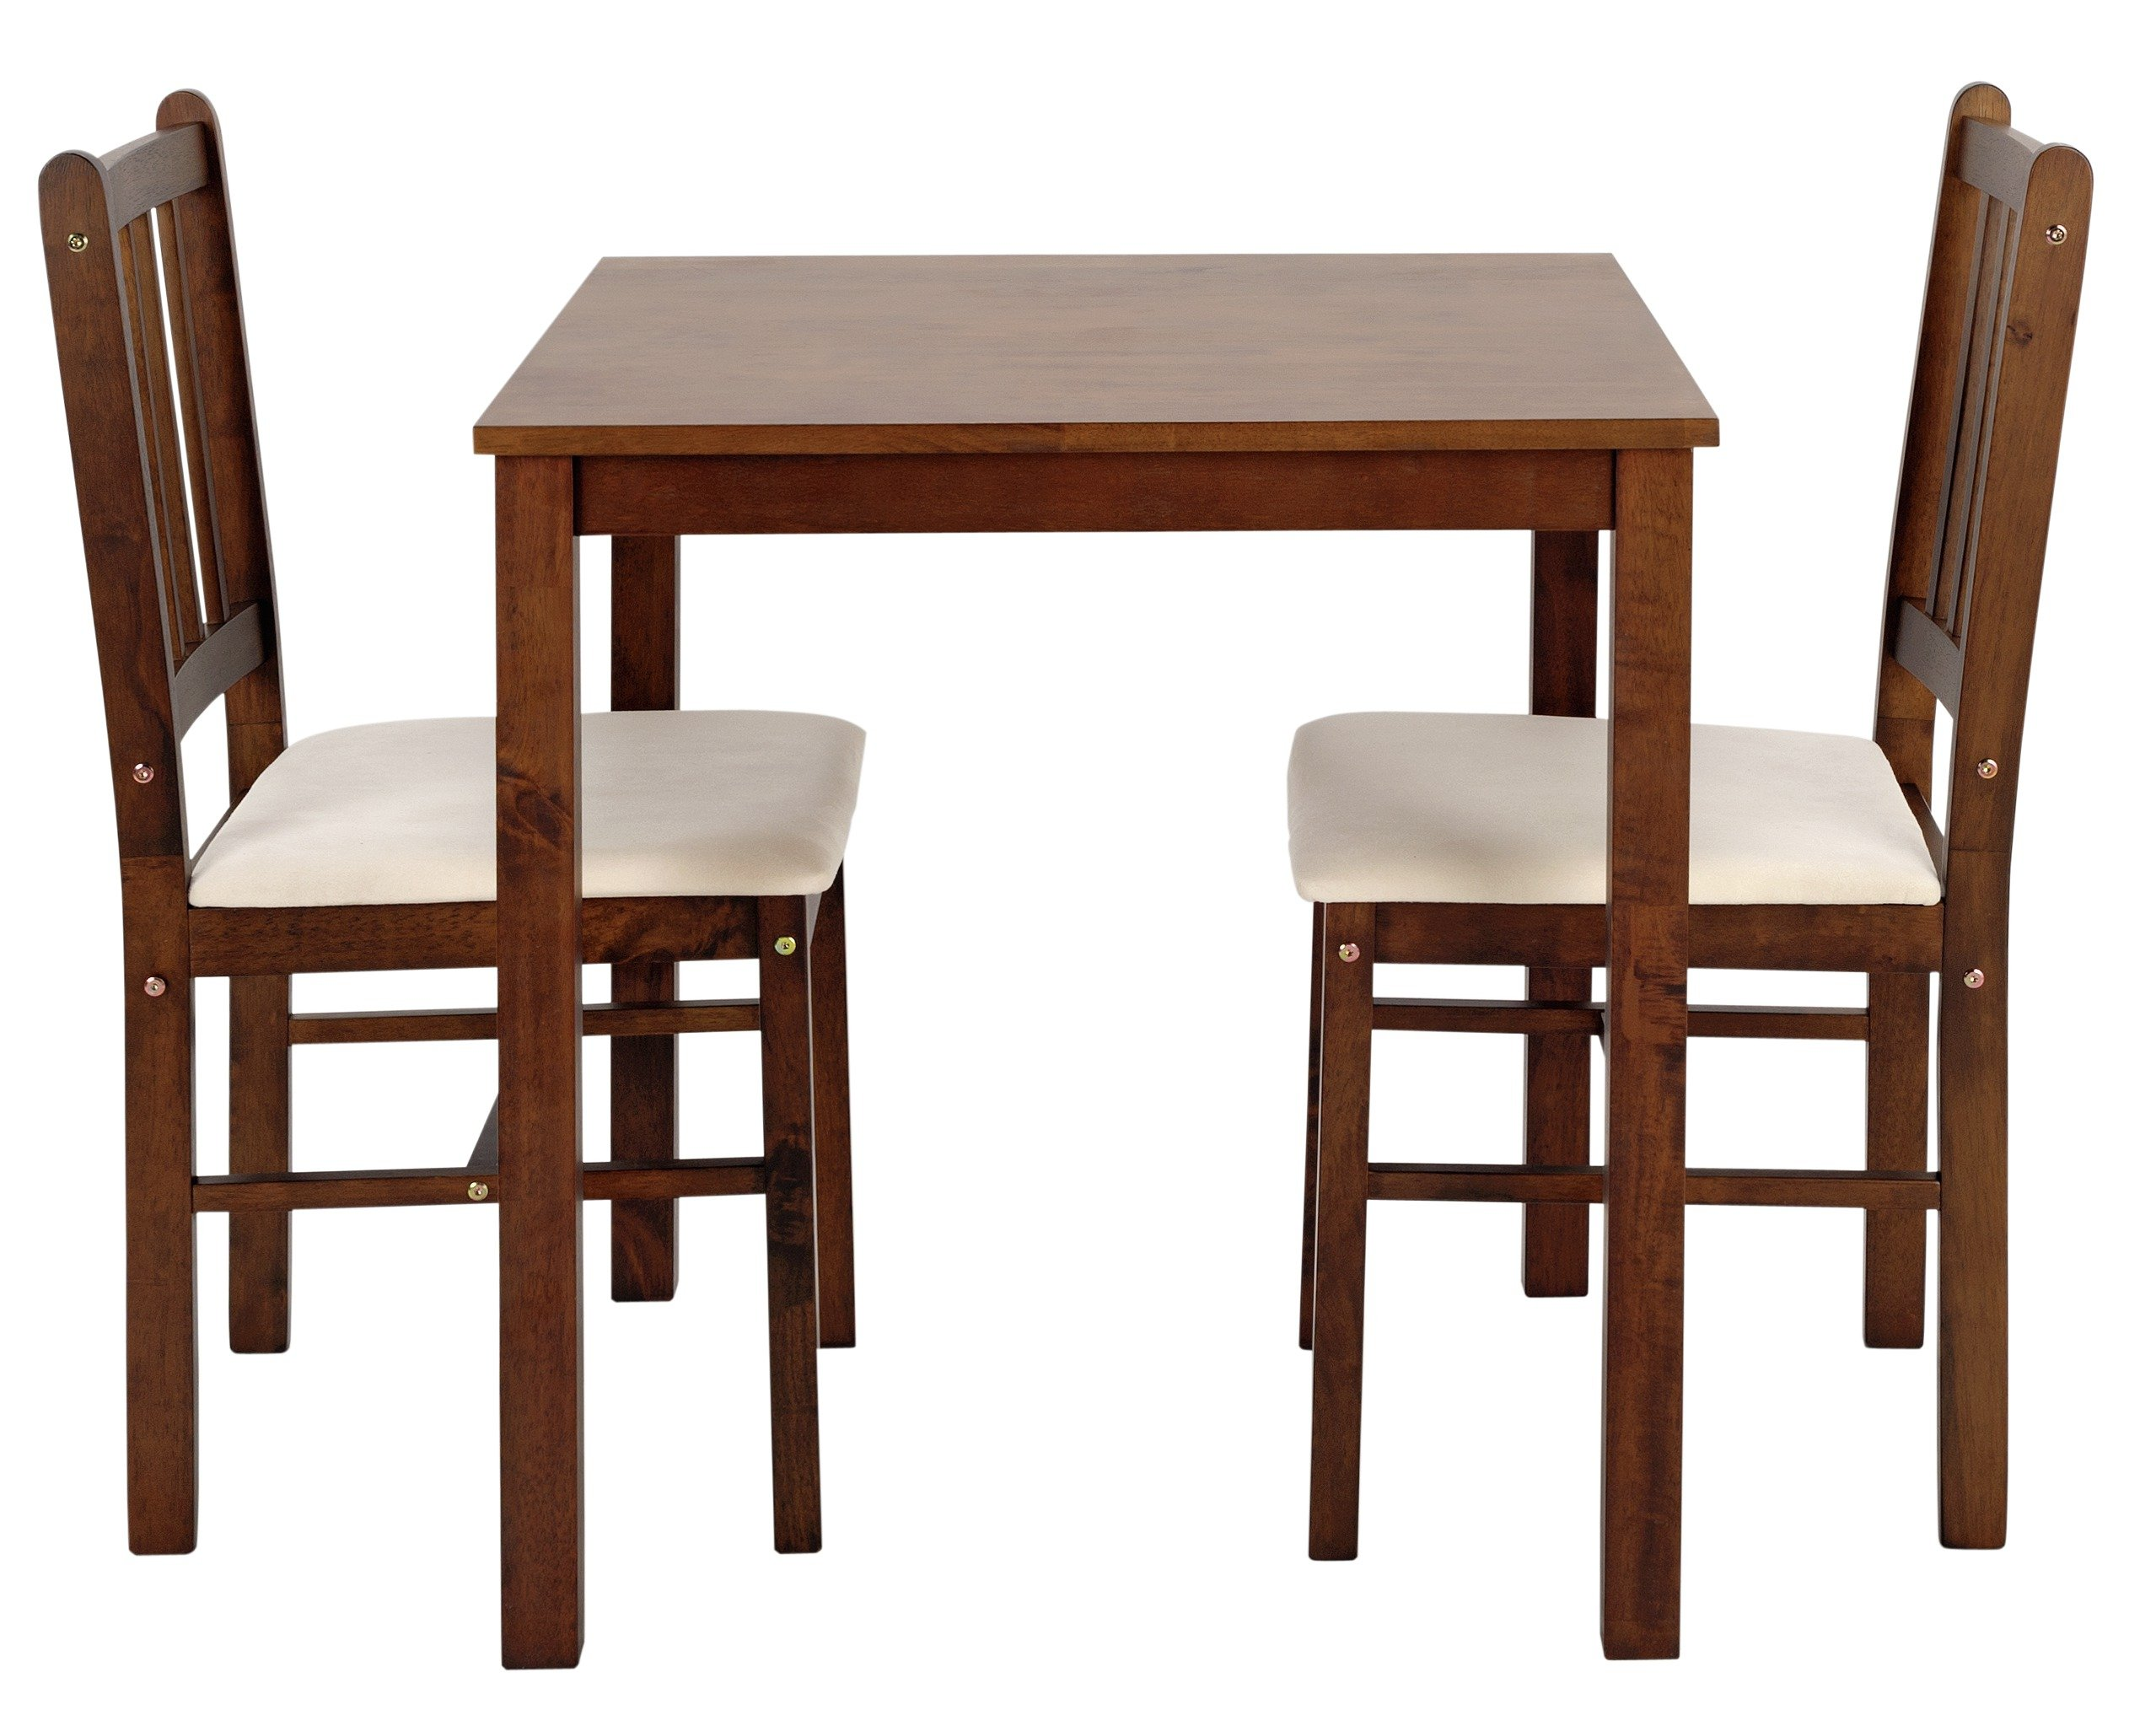 Buy HOME Kendall Solid Walnut Dining Table 2 Chairs Cream at